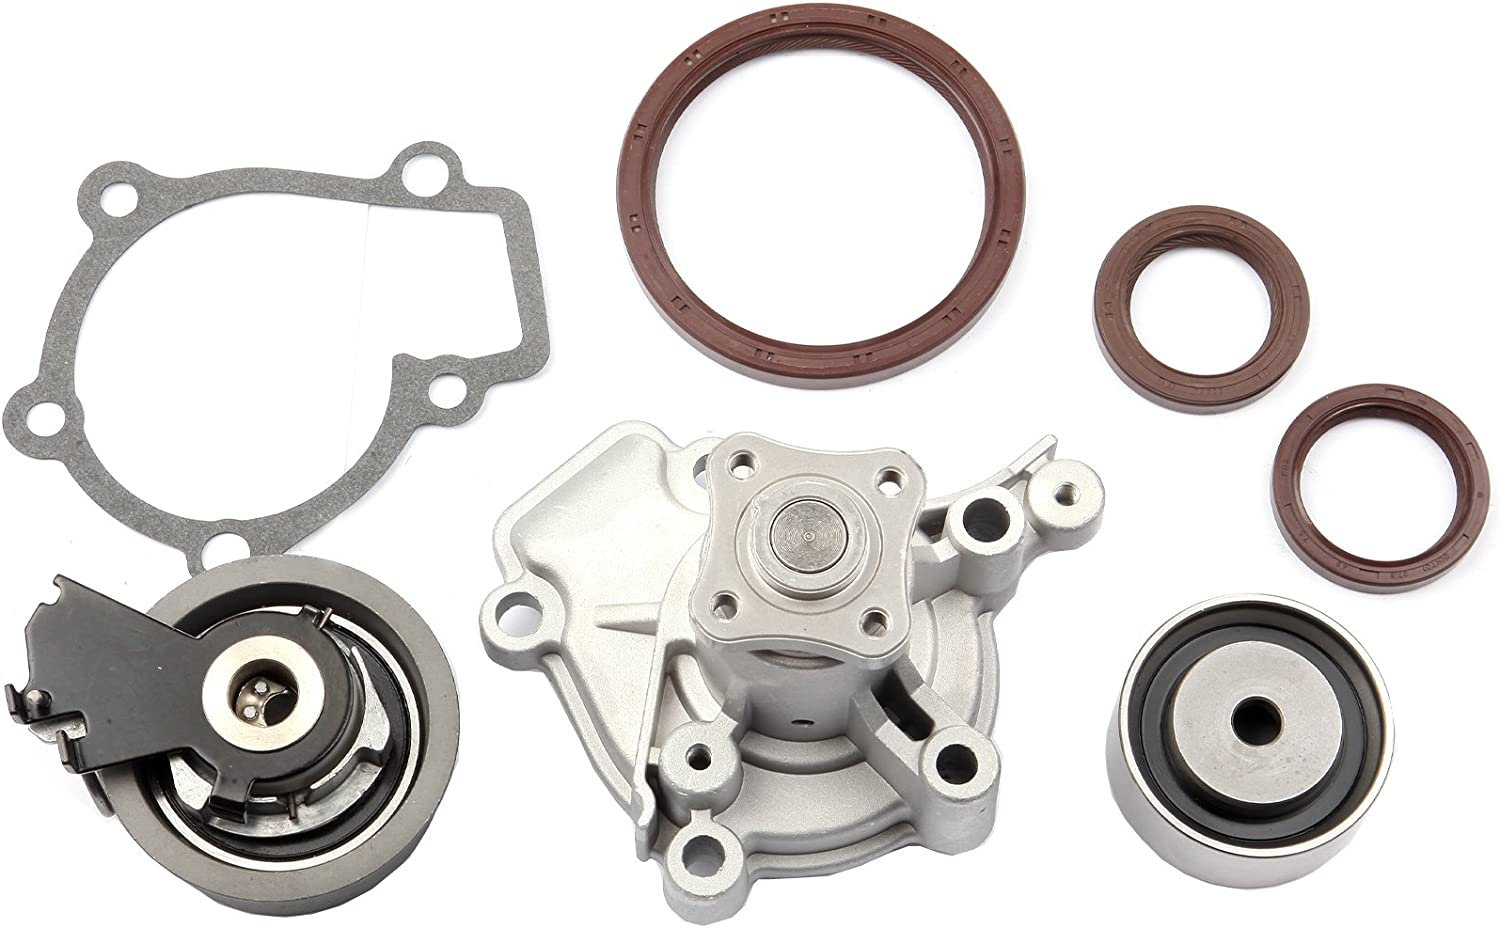 ANPART Timing Belt Kit Fit For 2008-2009 Hyundai Tucson 2010-2011 Kia Soul 2006-2009 Kia Spectra 2006-2009 Kia Spectra5 2006-2010 Kia Sportage Timing Belt Water Pump Tensioner Gasket Set